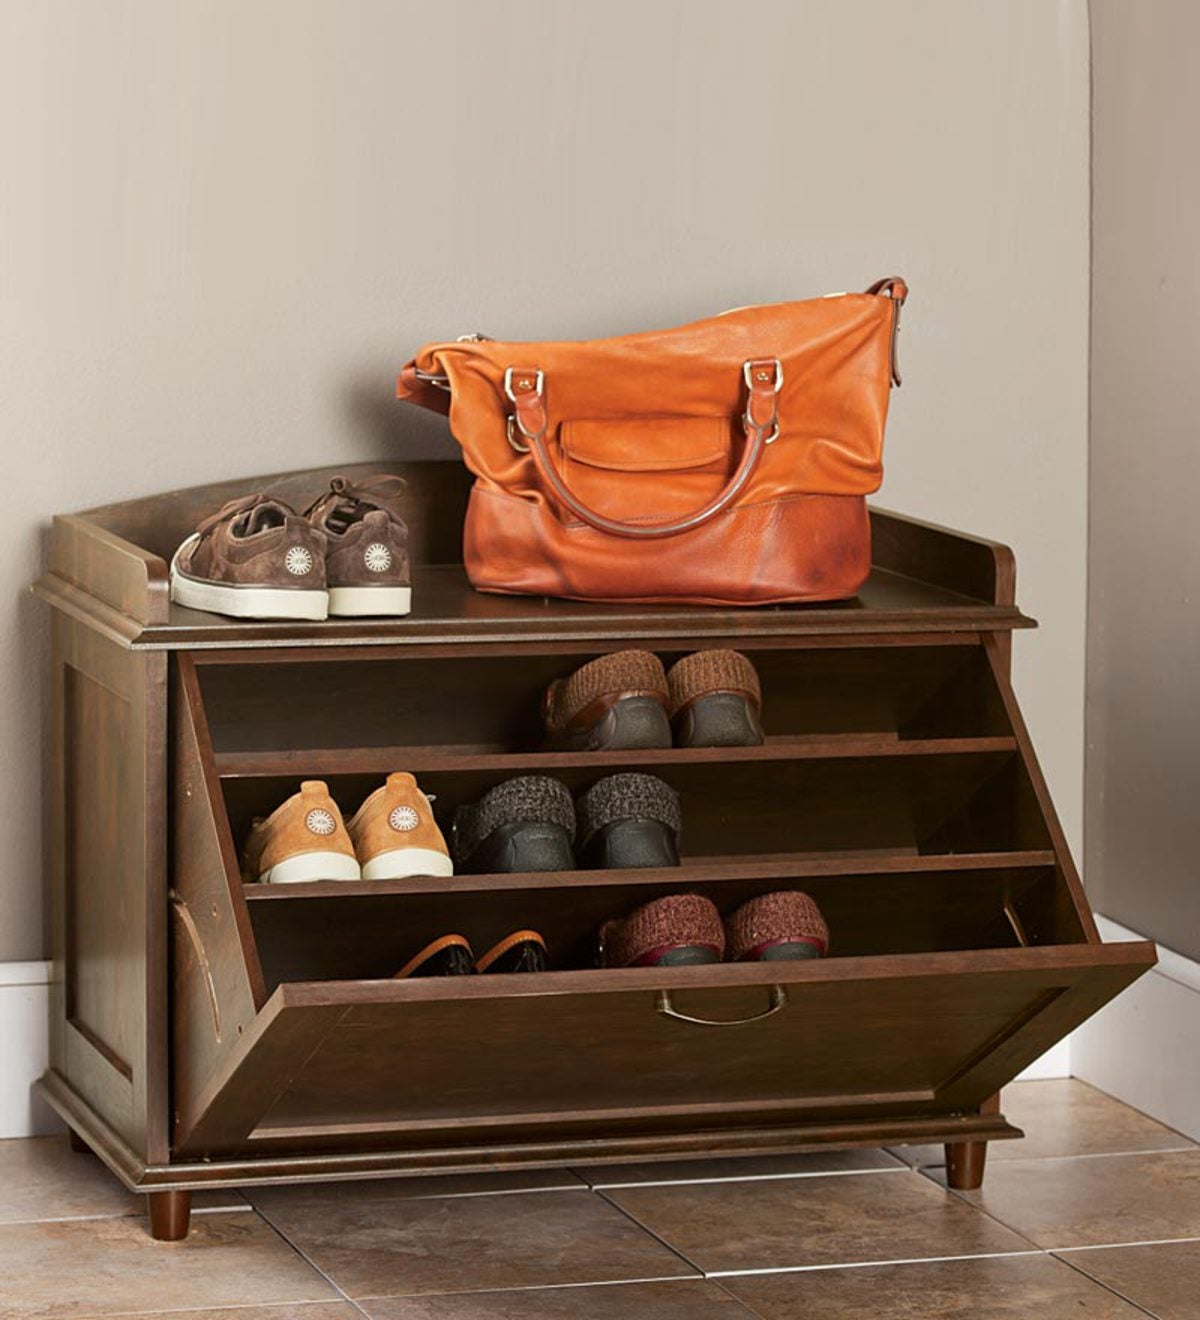 Wooden Shoe Storage Chest With Handle Plowhearth